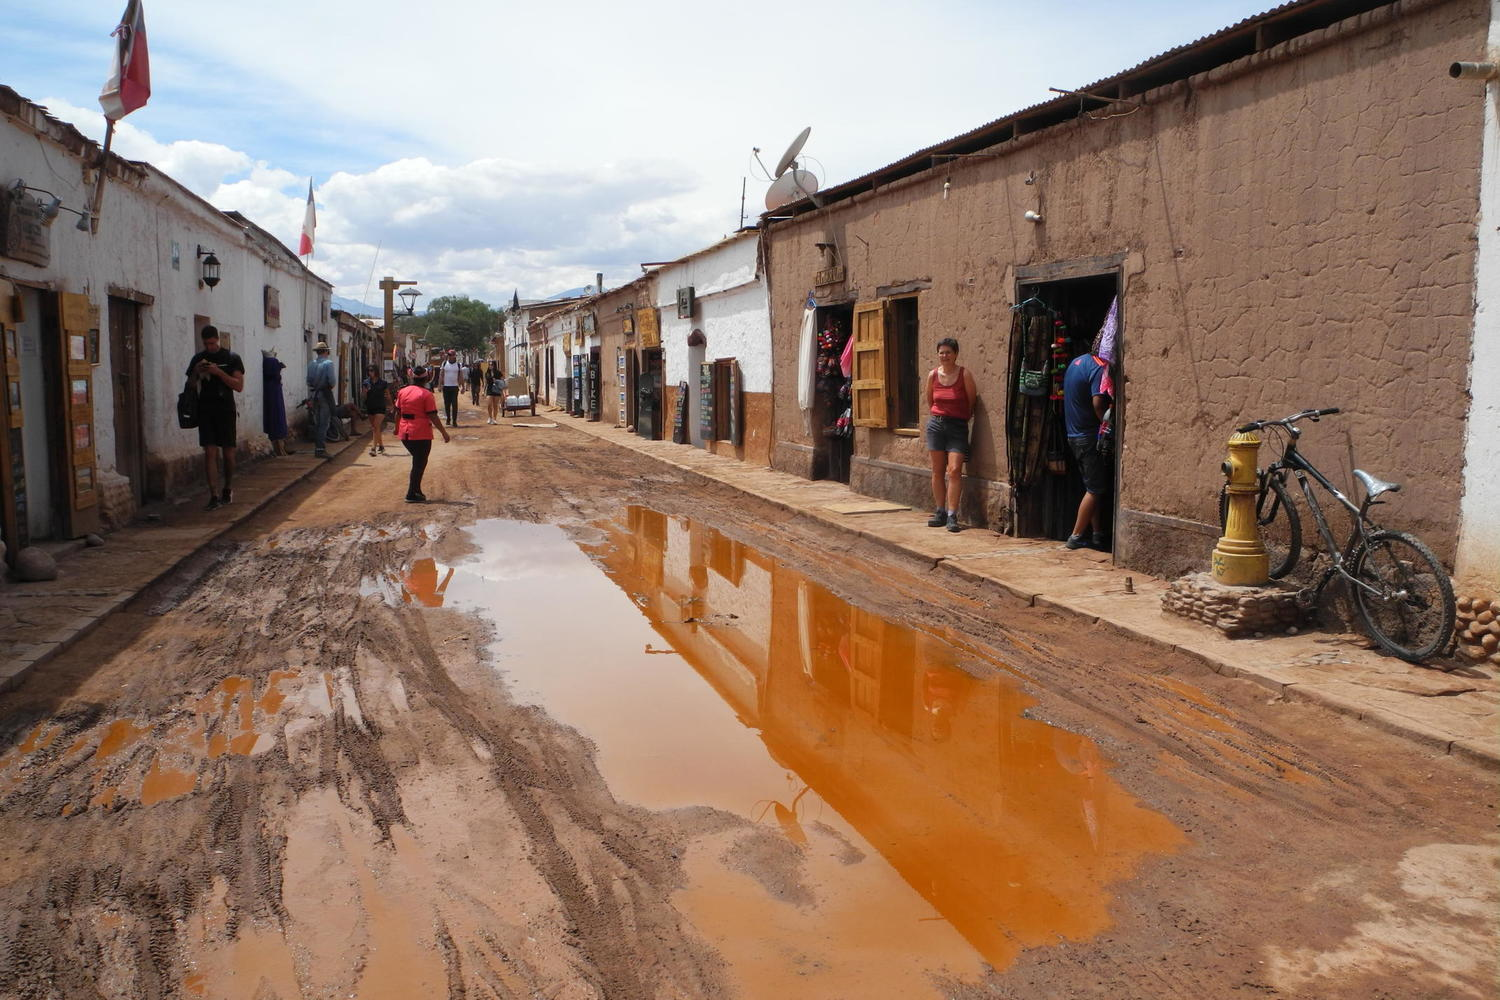 Rare puddles turn the streets of San Pedro de Atacama orange